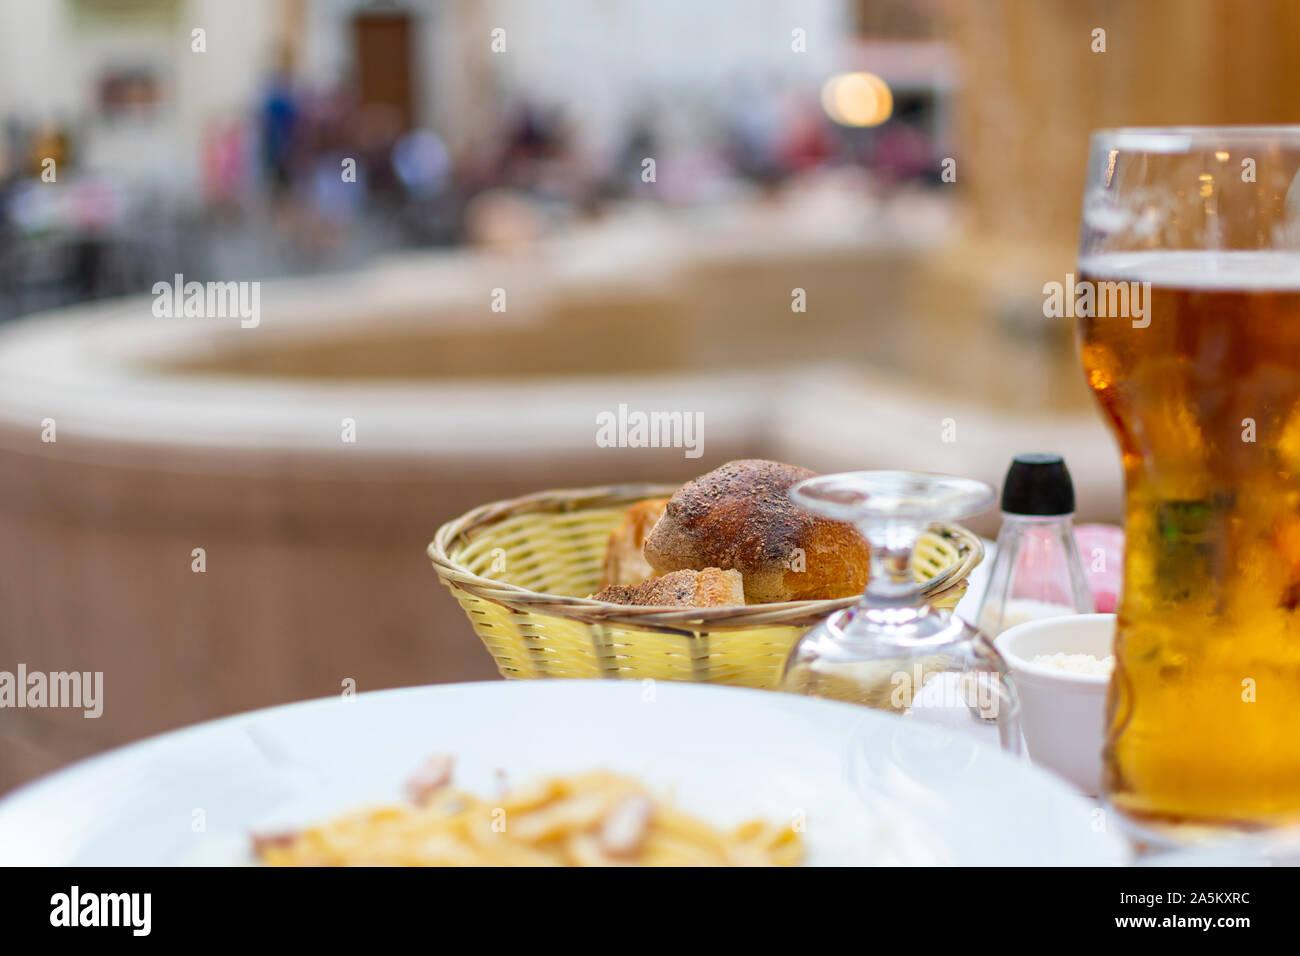 A bread basket of freshly baked rolls on a patio table in a piazza at Place Rossetti on the French Riviera in Nice, France. Stock Photo